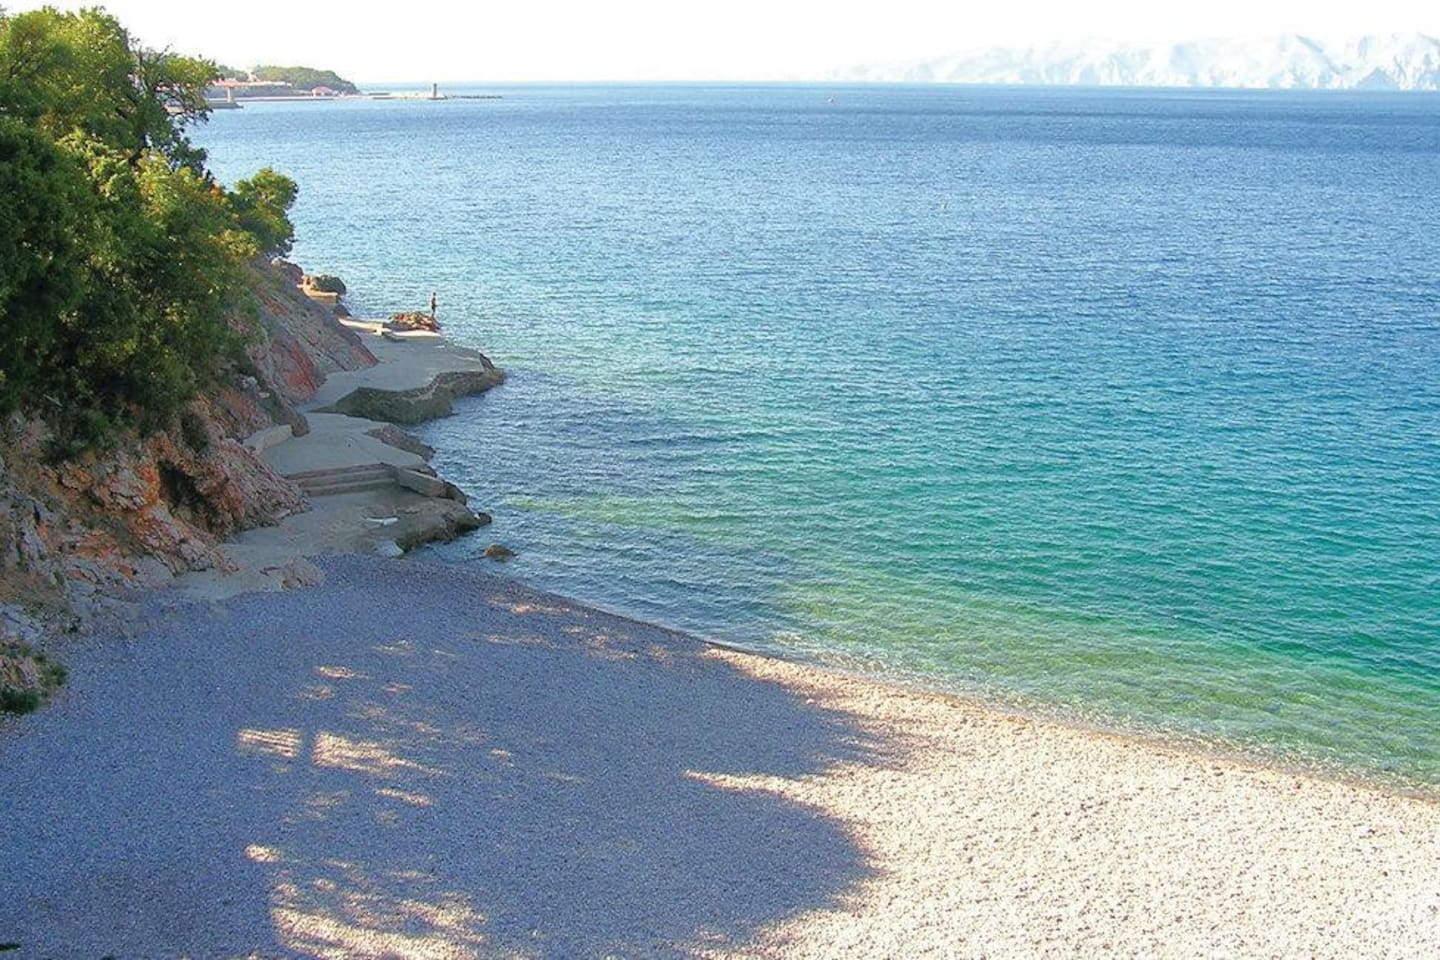 Senj beaches